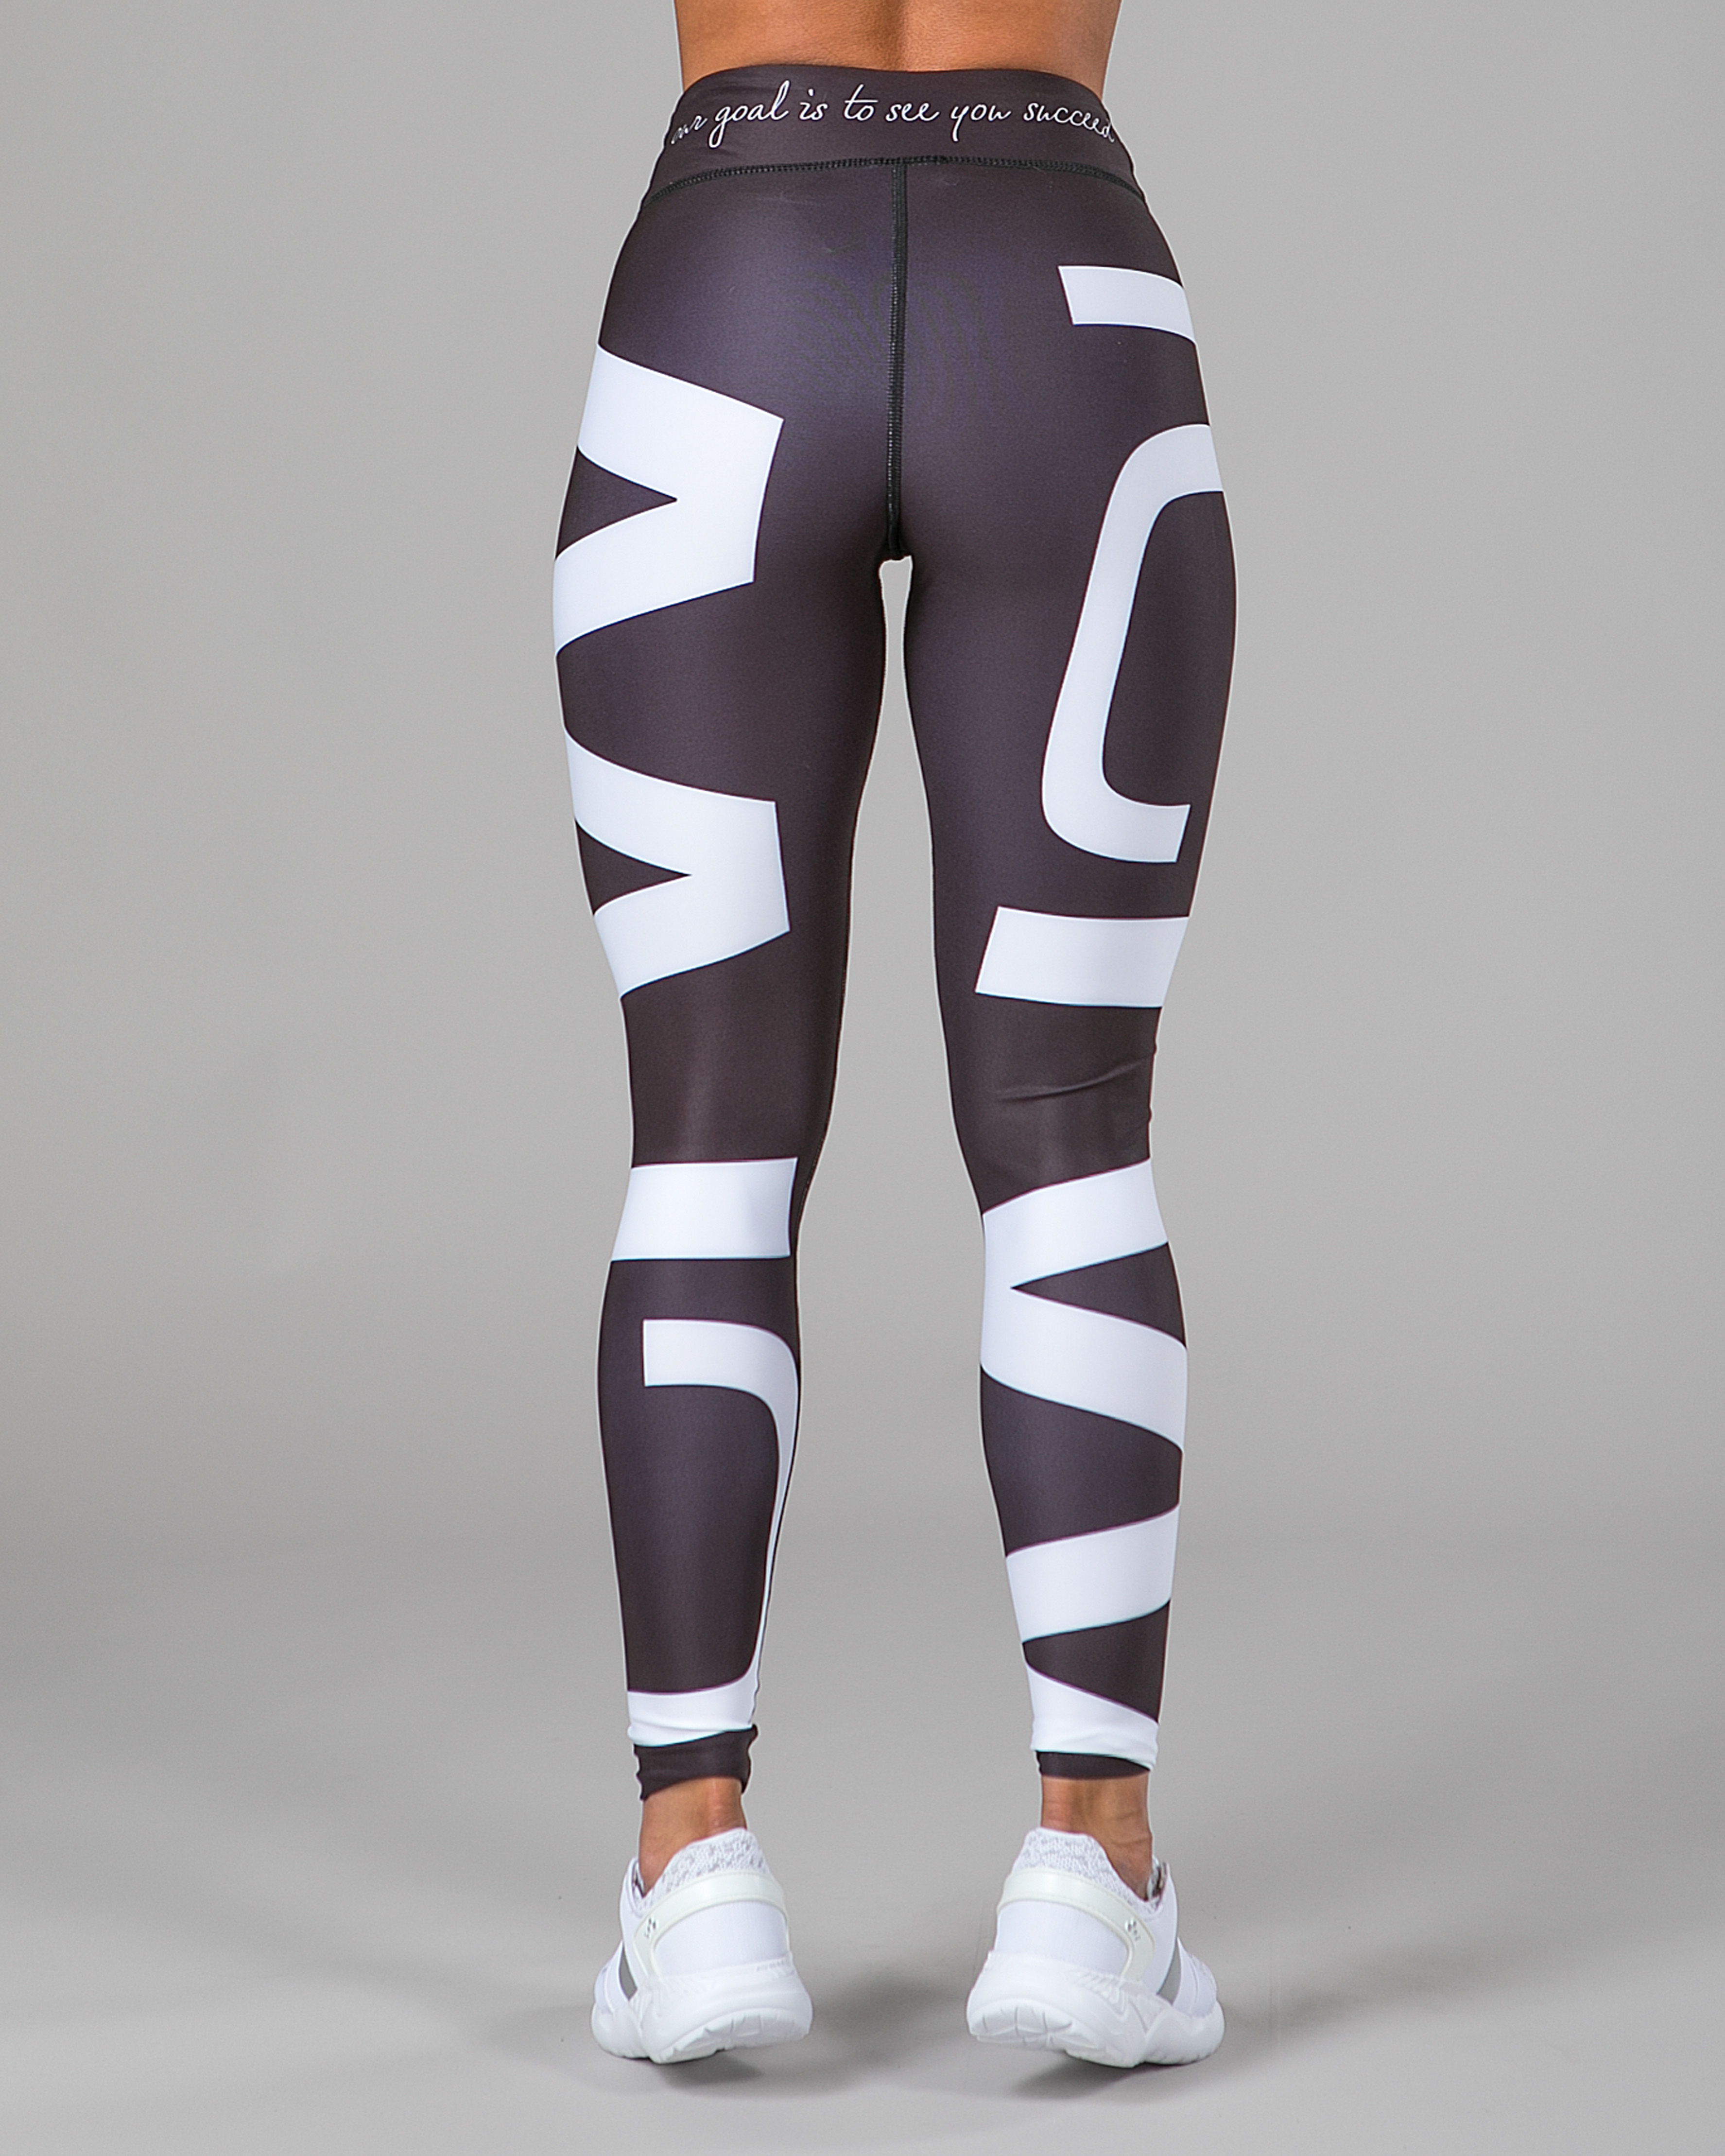 black and white leggings - up to 70% off. Well, darn. This item just sold out. Select notify me & we'll tell you when it's back in stock.